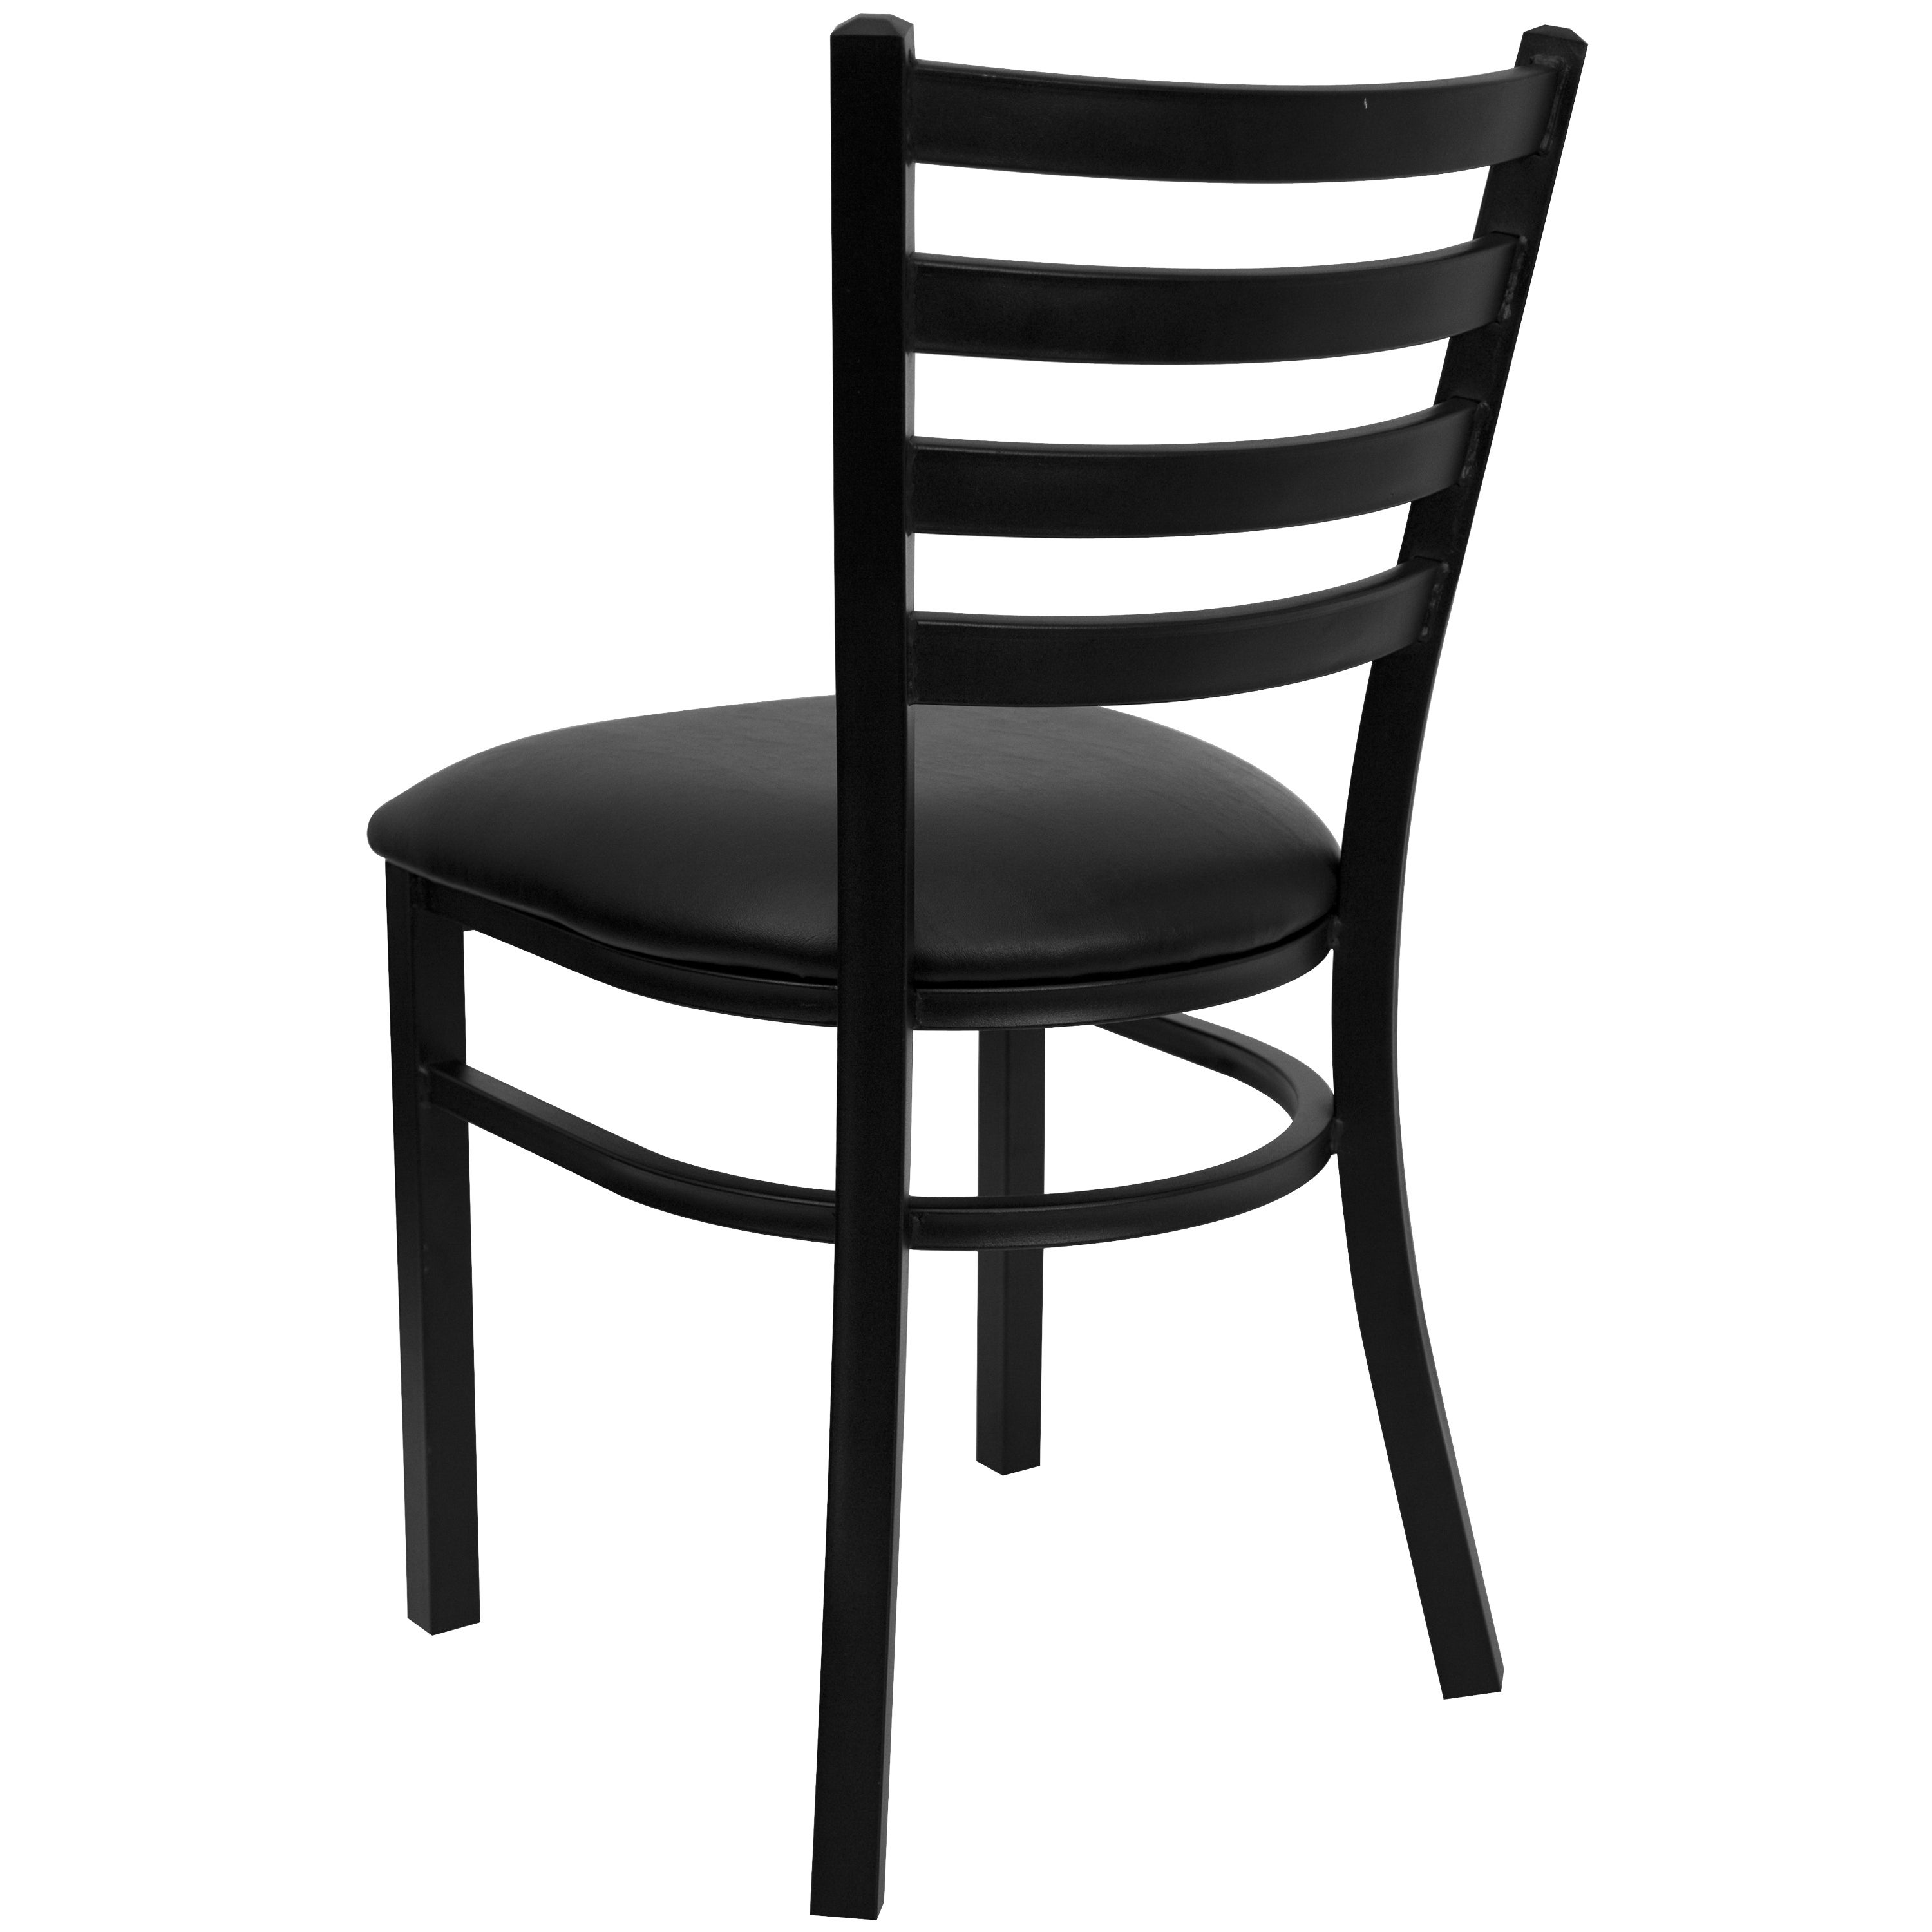 Picture of: Ladder Back Metal Restaurant Chair 16 5 W X 17 D X 32 25 H 16 5 W X 17 D X 32 25 H On Sale Overstock 10673582